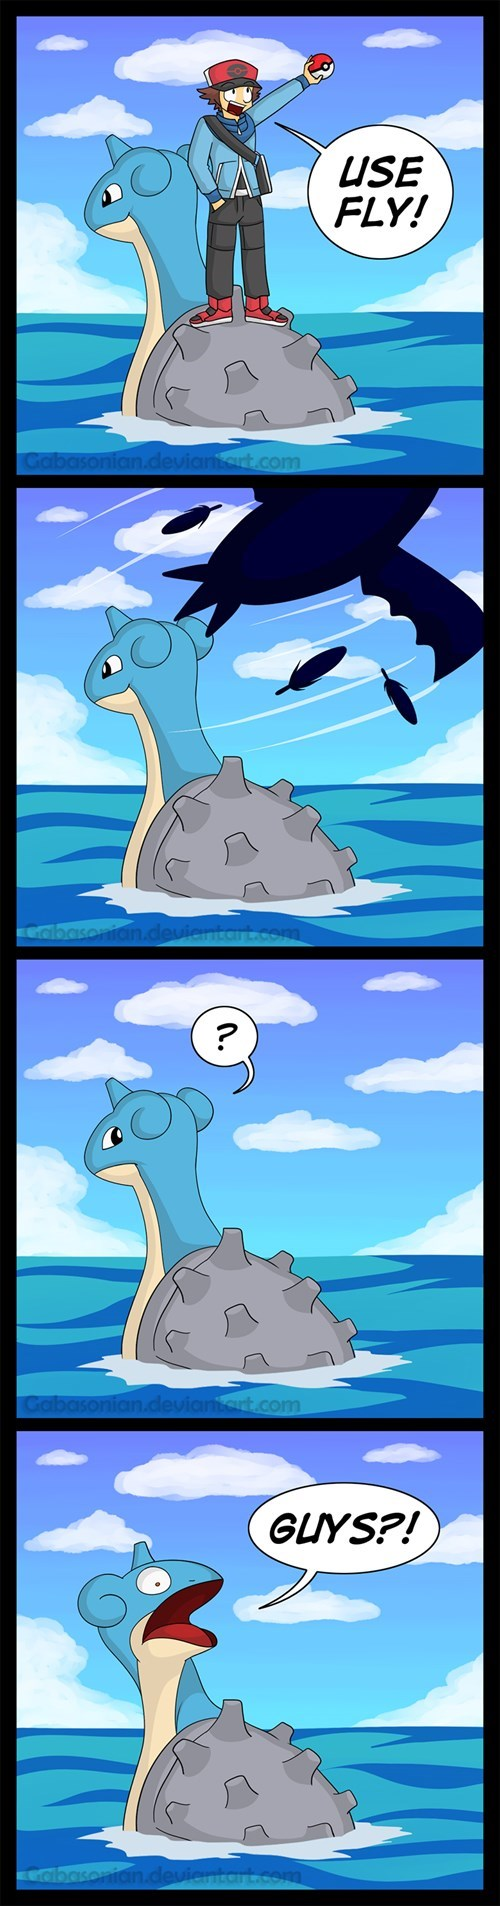 fly lapras Pokémon surf Sad - 8325322240